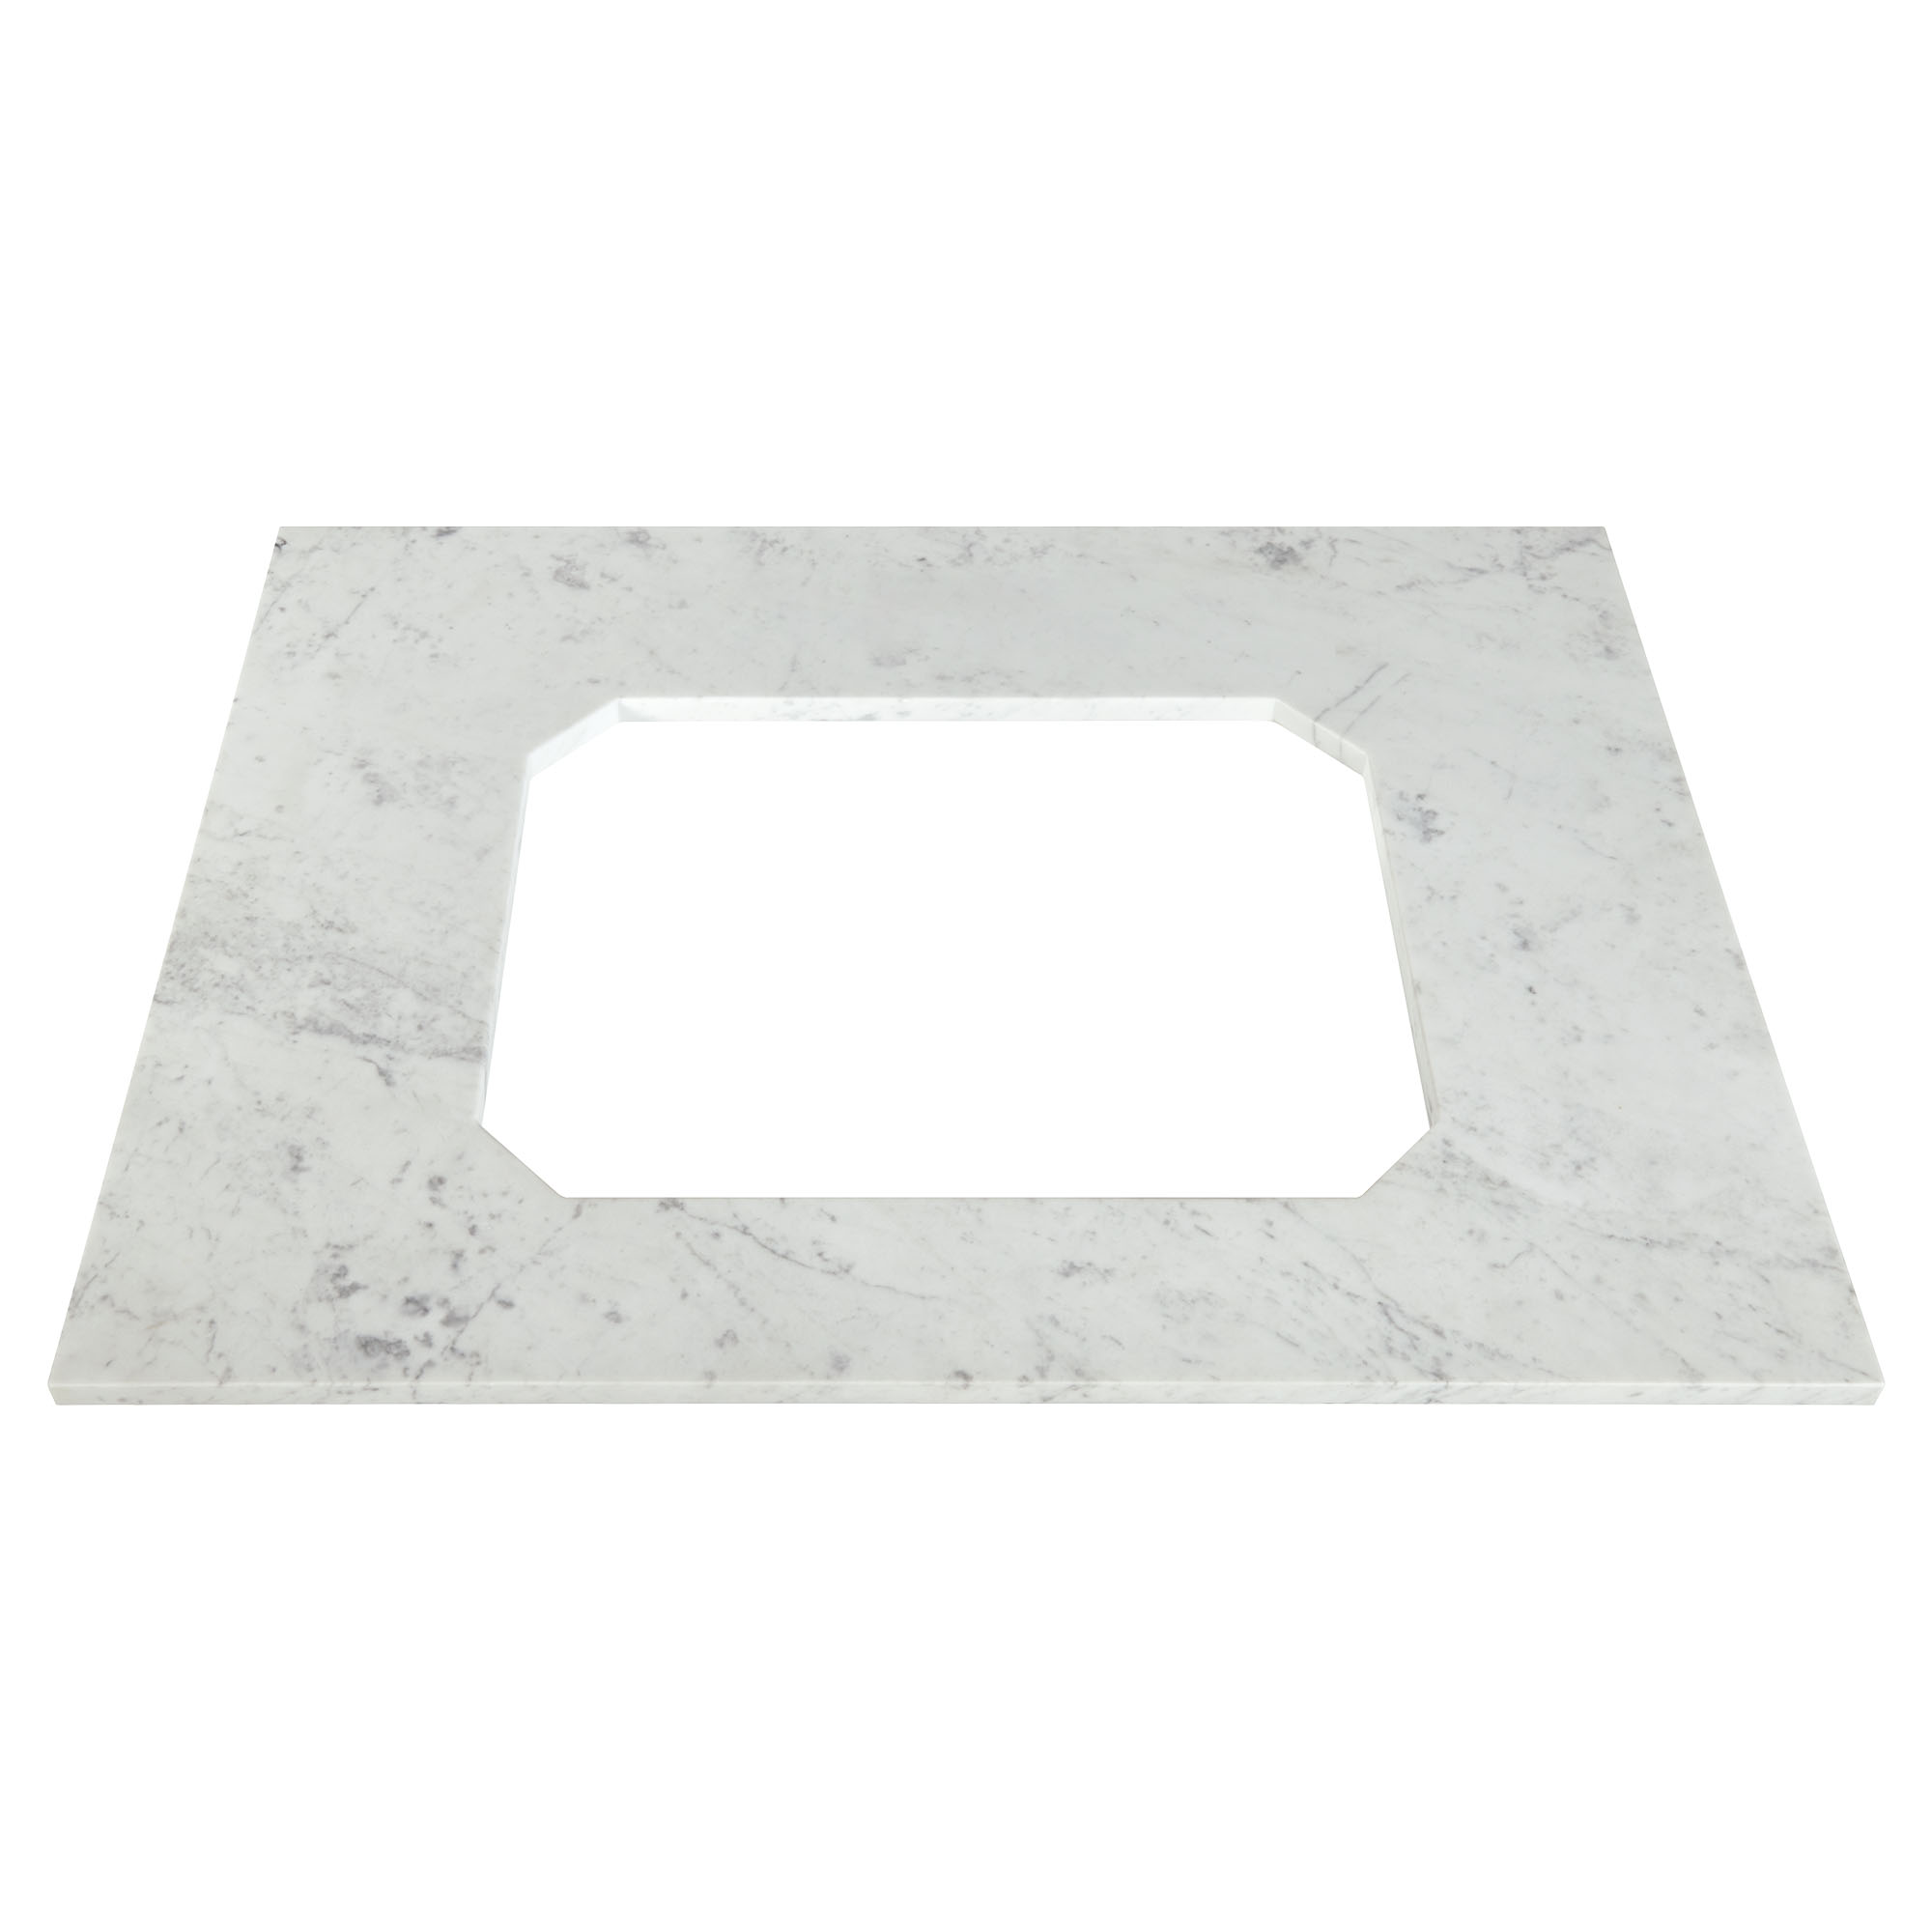 Belshire 30in Carrara Marble Vanity - No hole